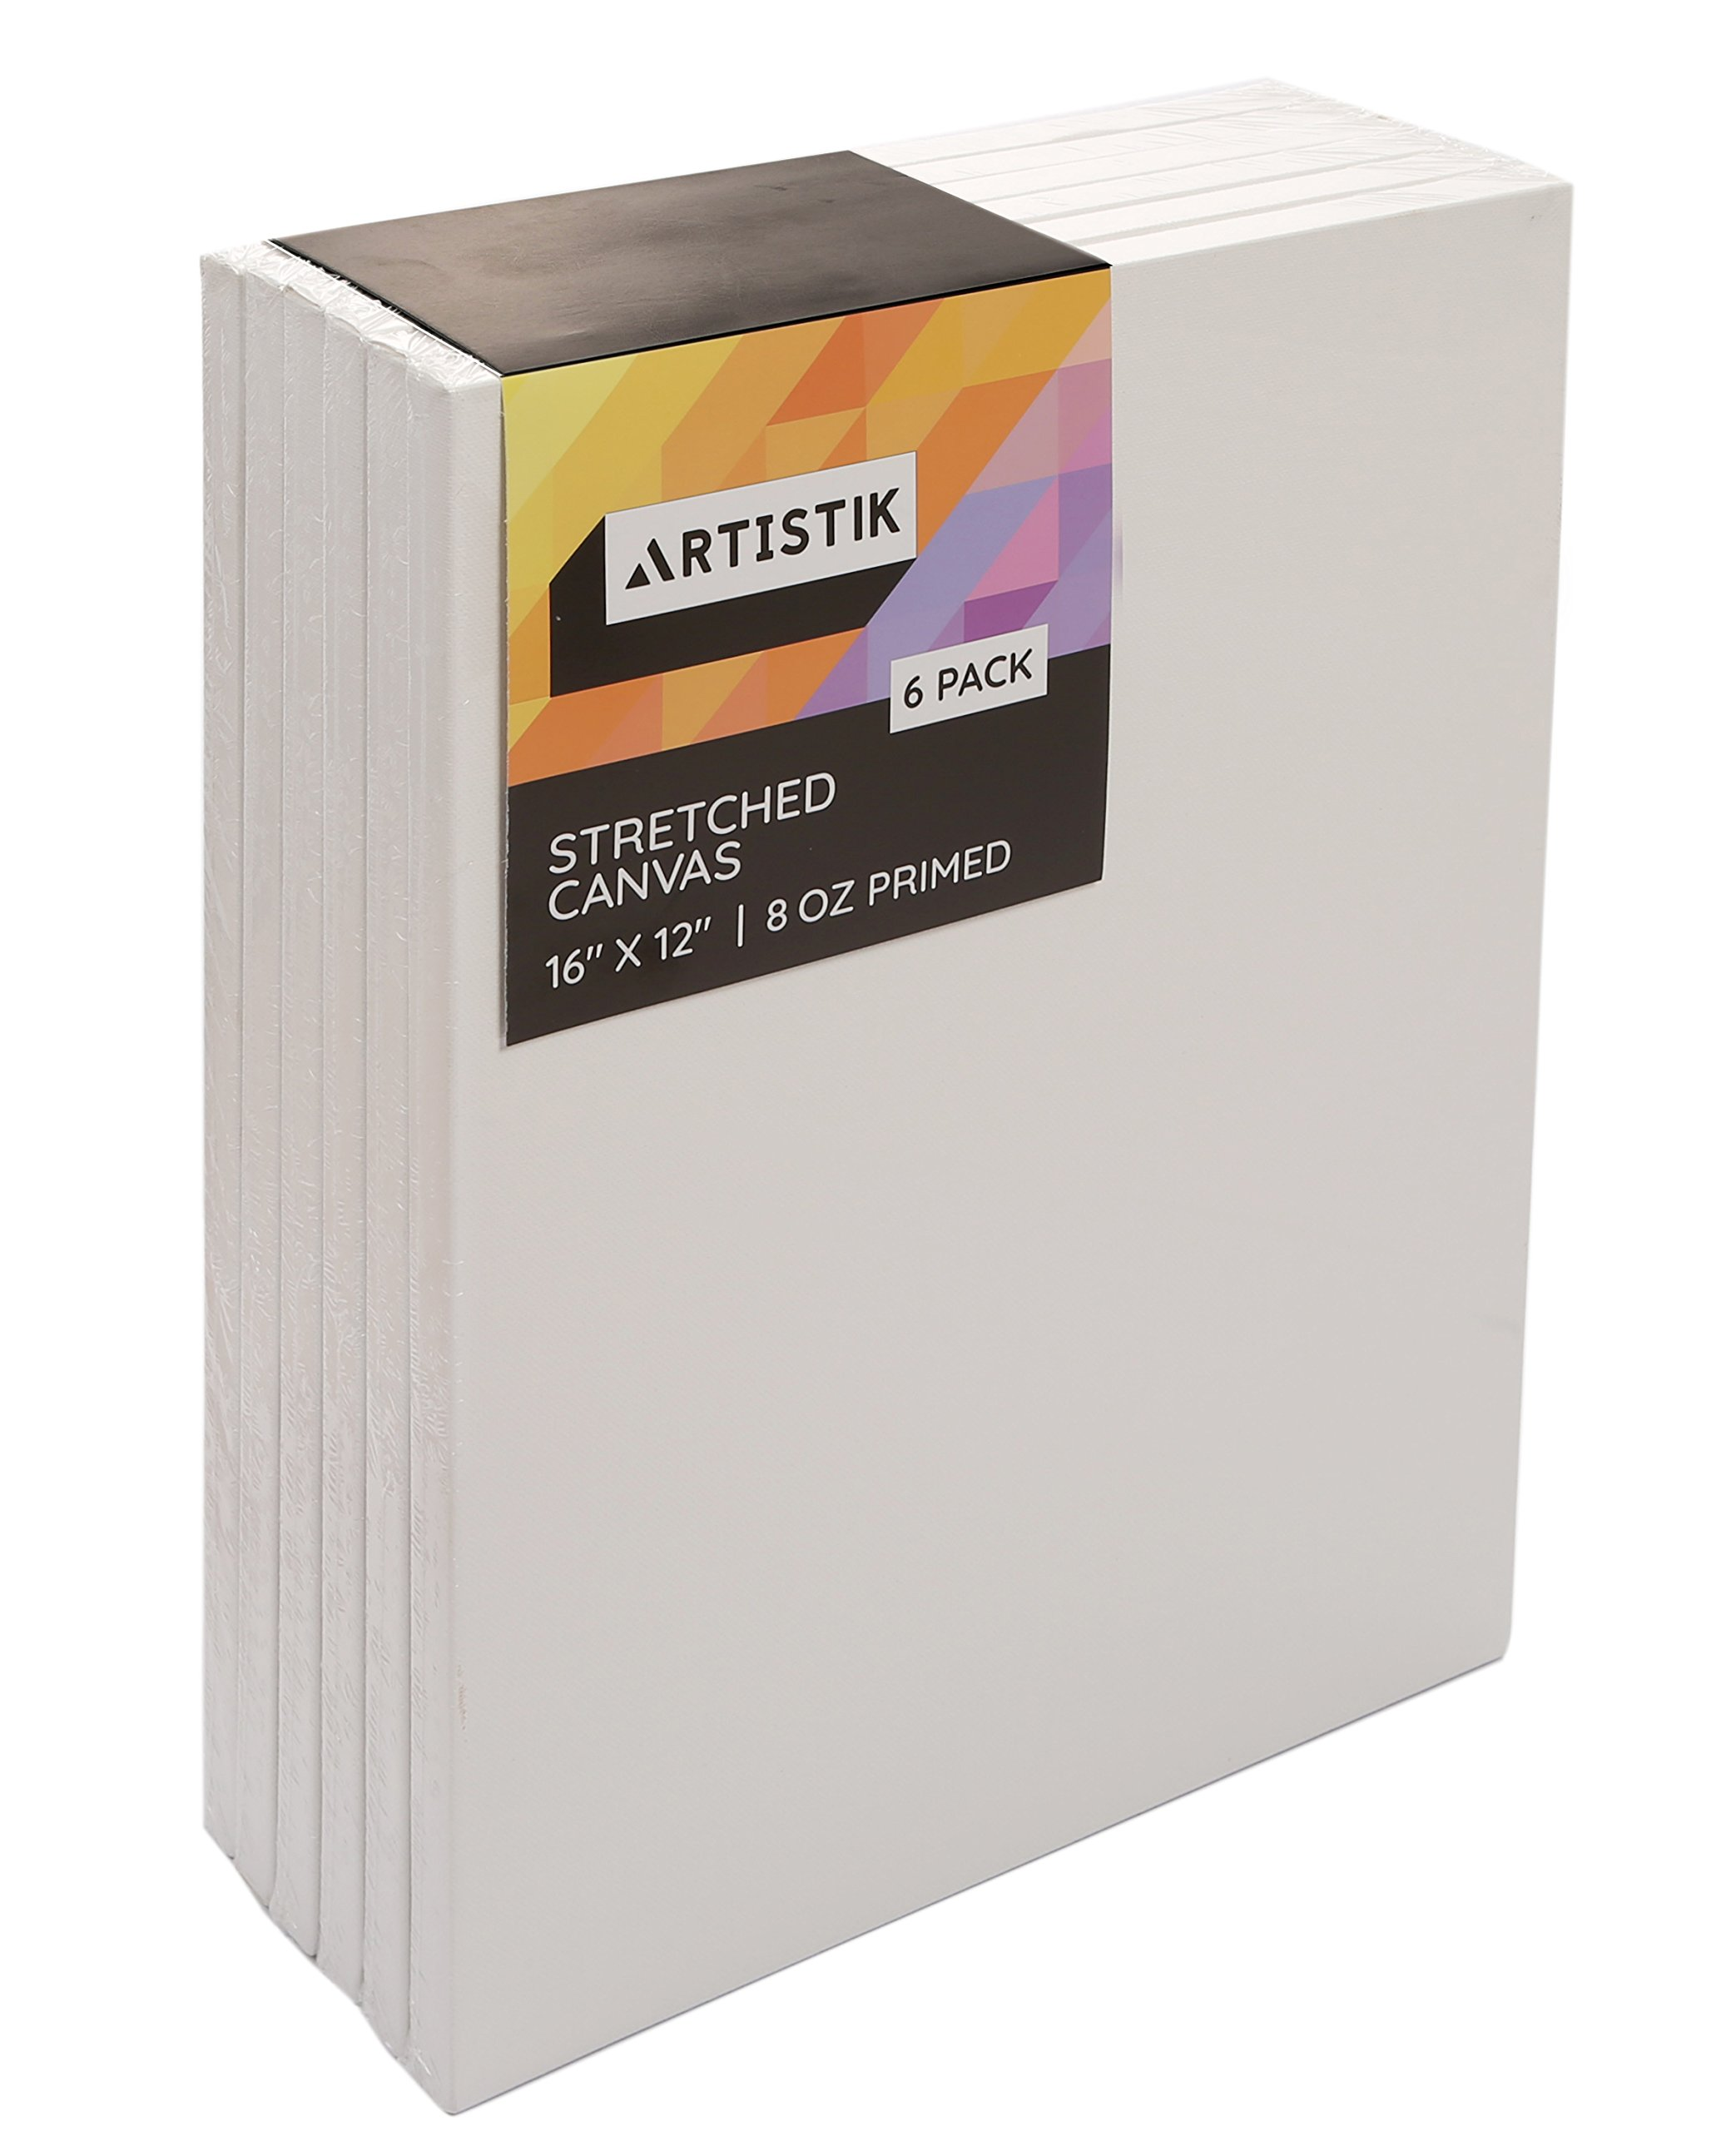 Artistik Stretched Canvas Frames - Stretched Canvas (Pack of 6-16 in x 12 in) 100% Cotton Artist Quality Acid Free Triple Primed Gesso Stretched Canvases Quality Art Paint Supply